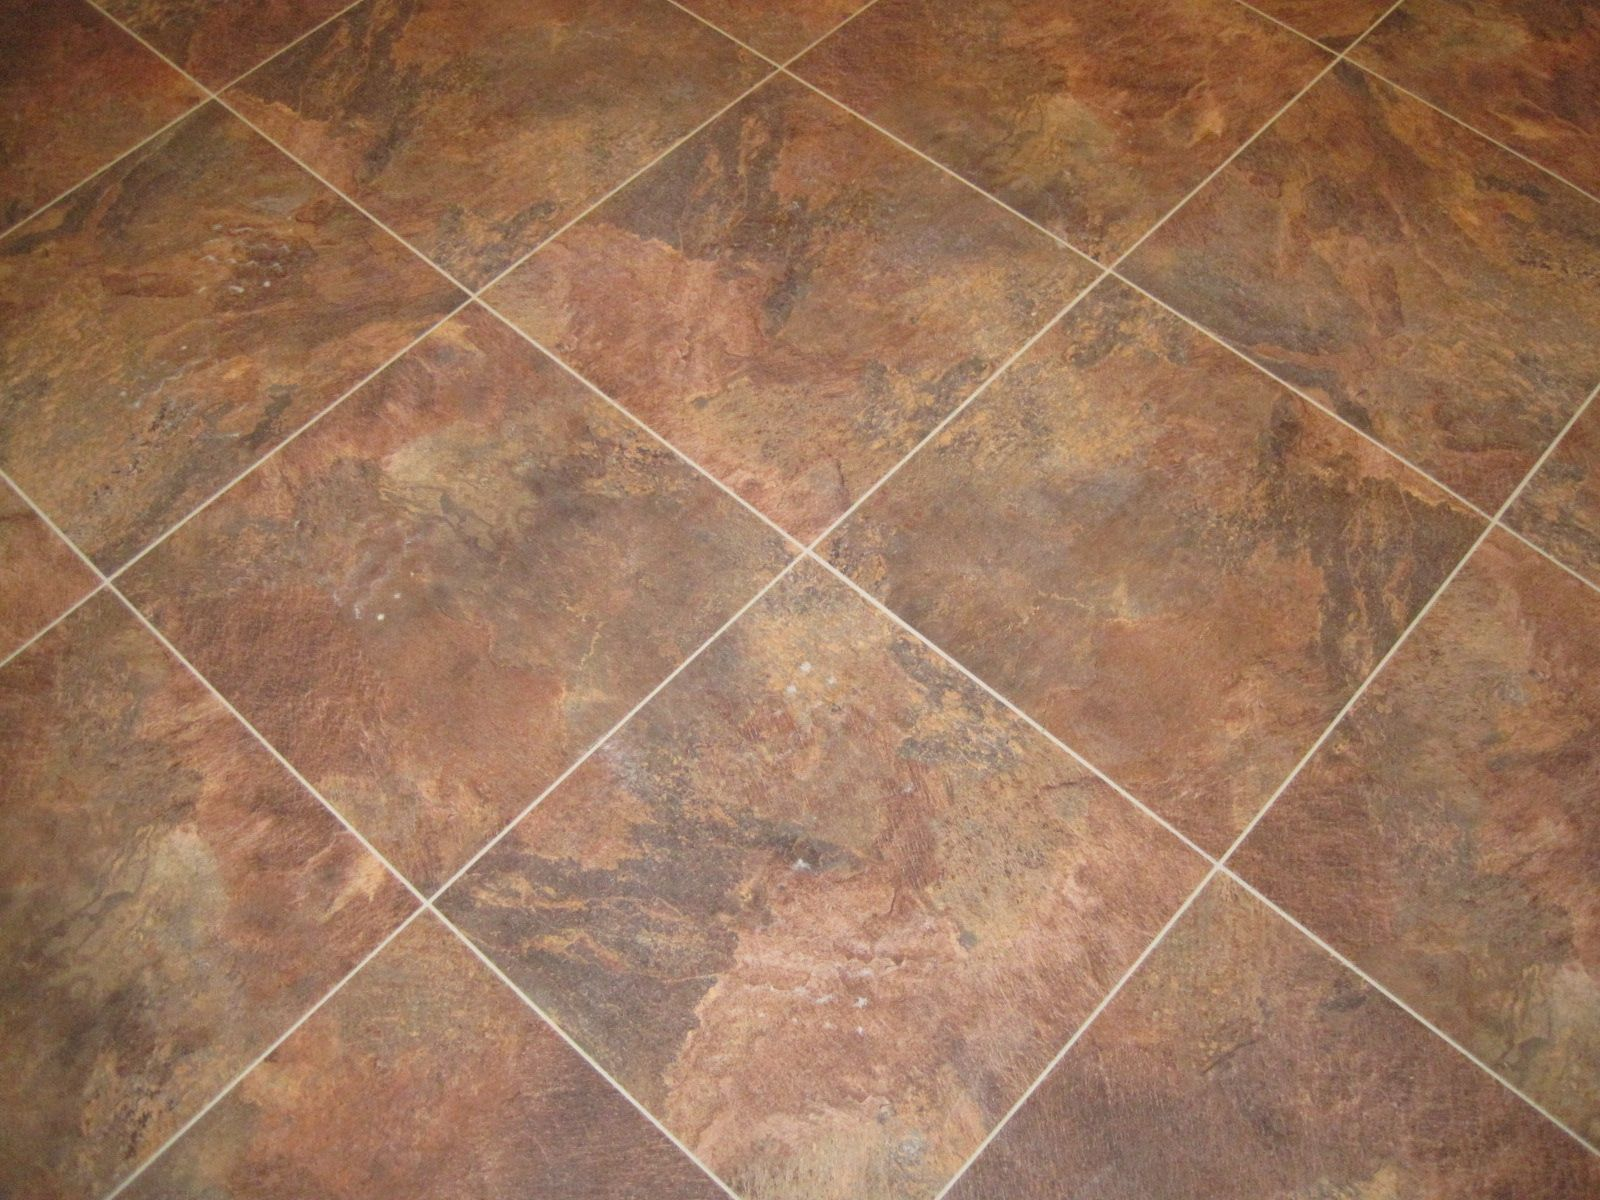 The Kitchen Flooring A Large Vinyl Tile With Stone Powder Embedded